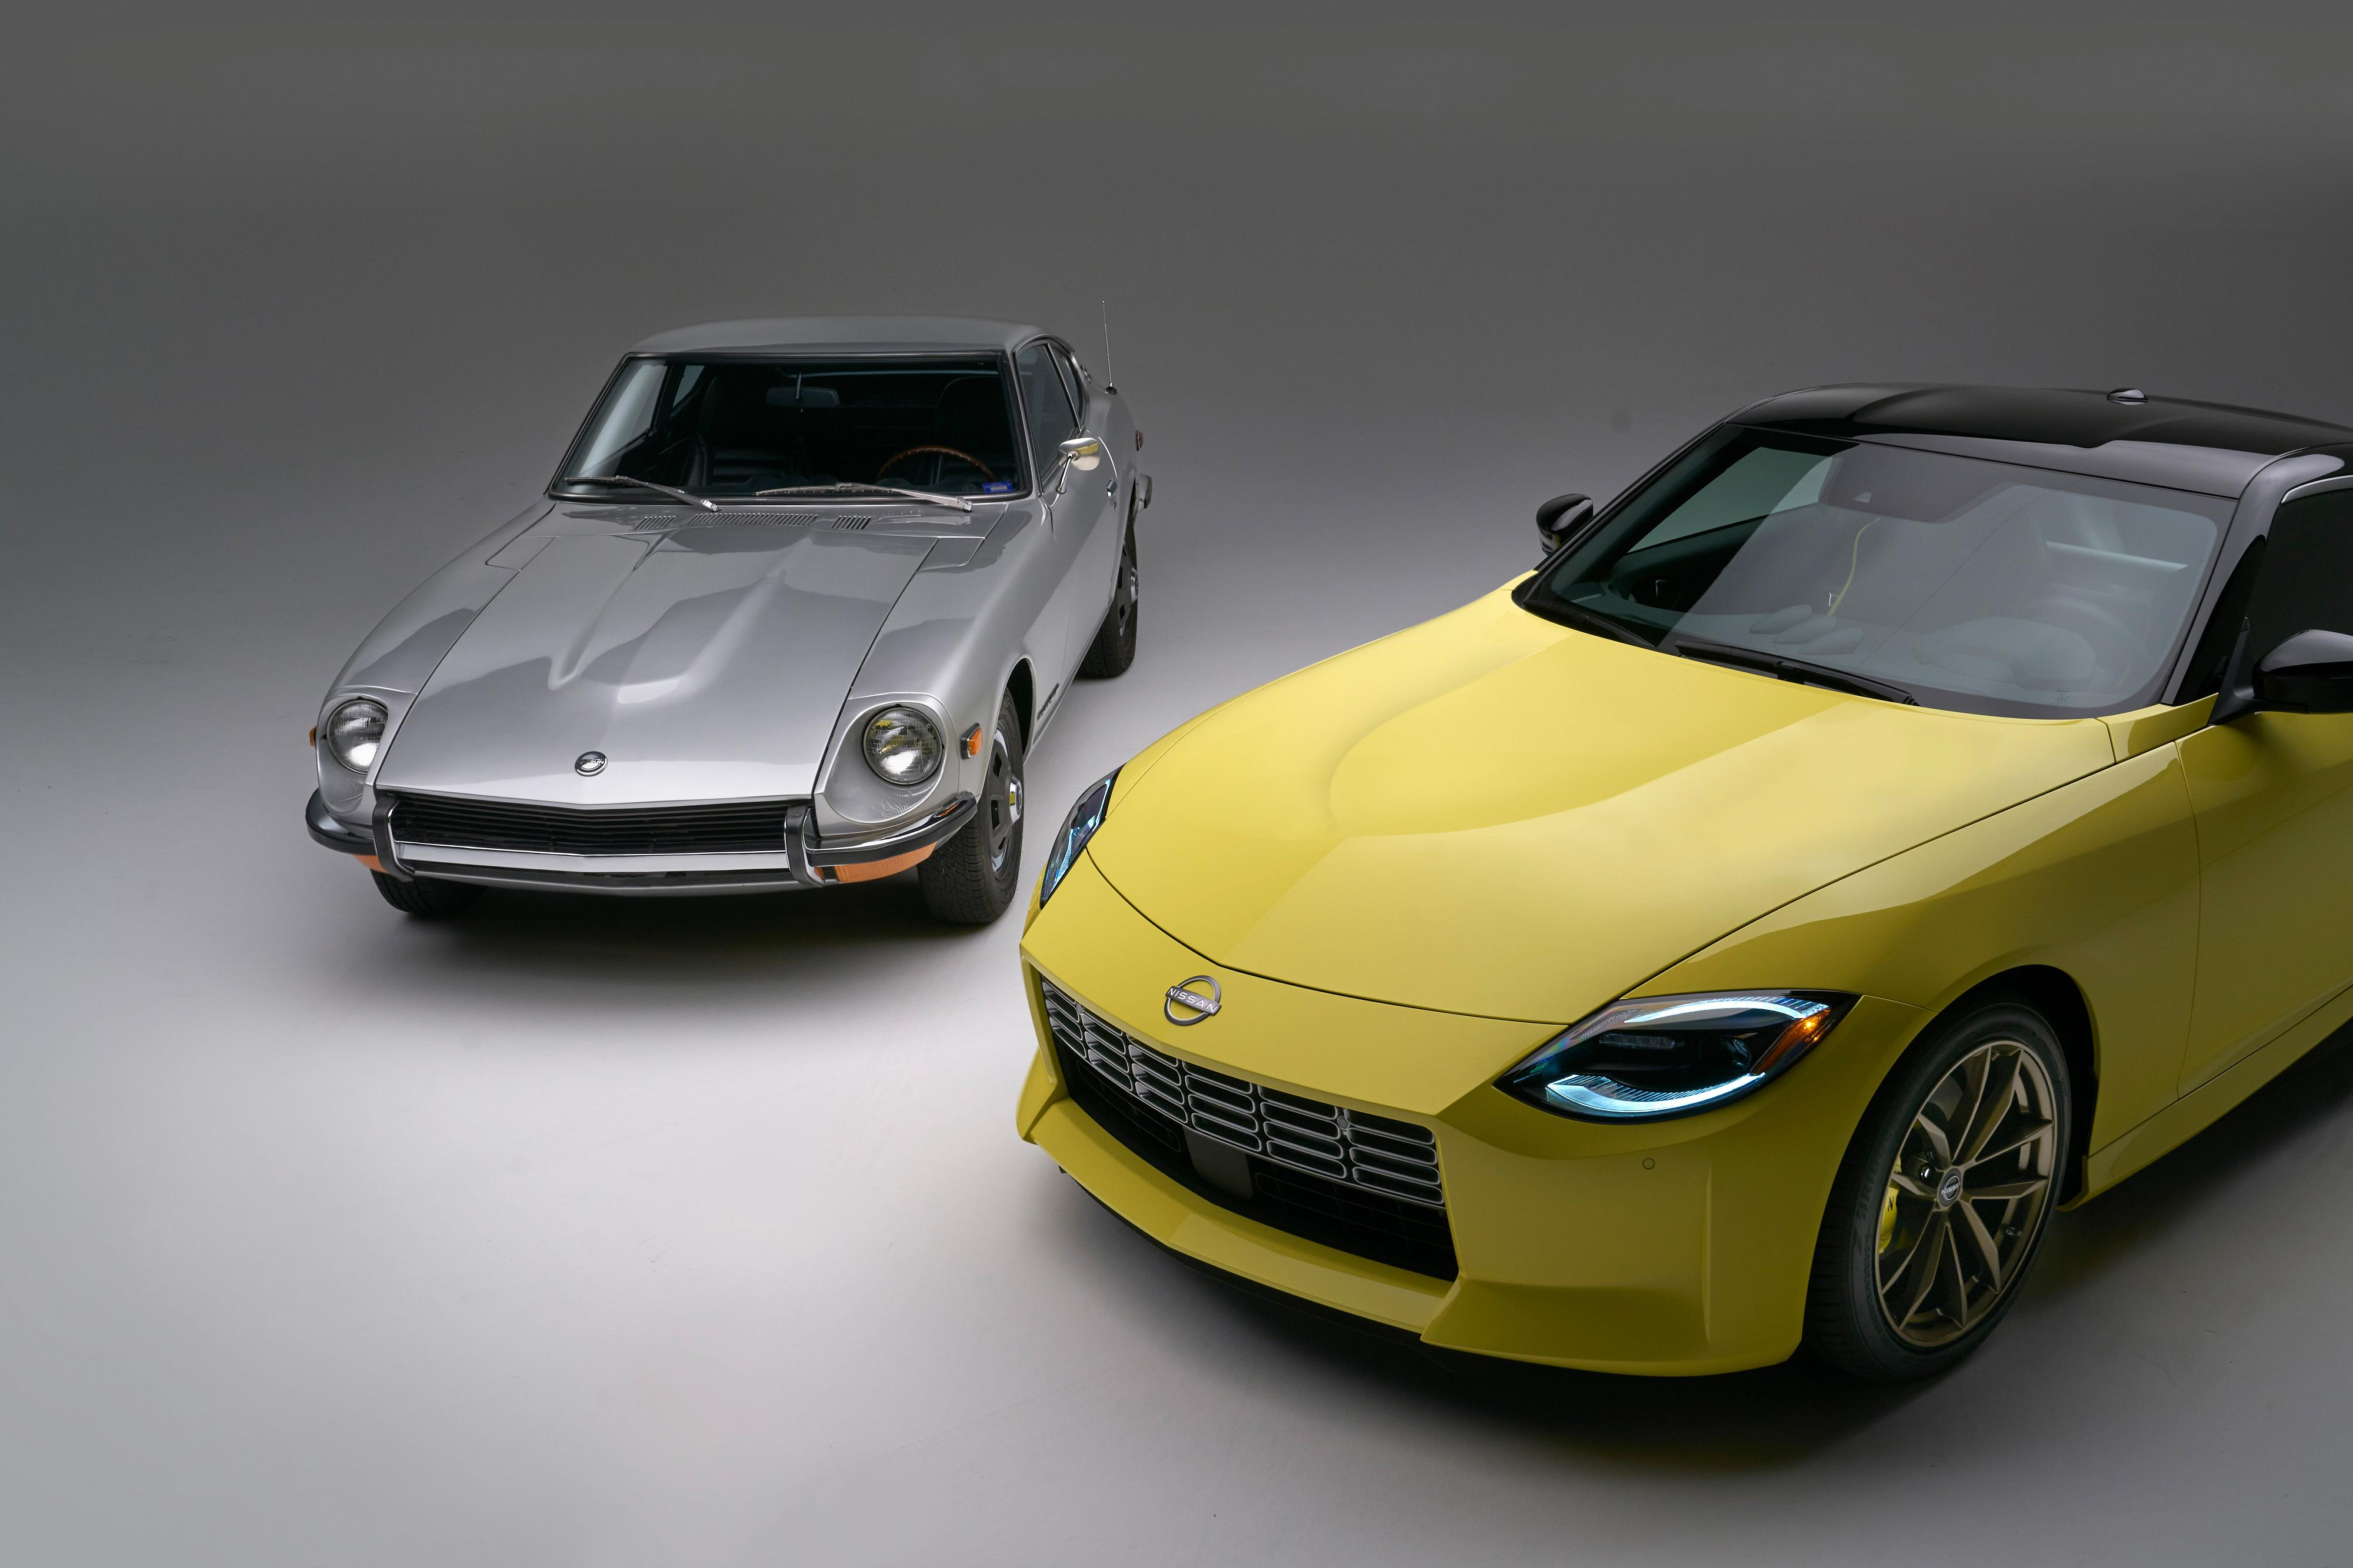 Nissan Z styling will influence other models from 2023